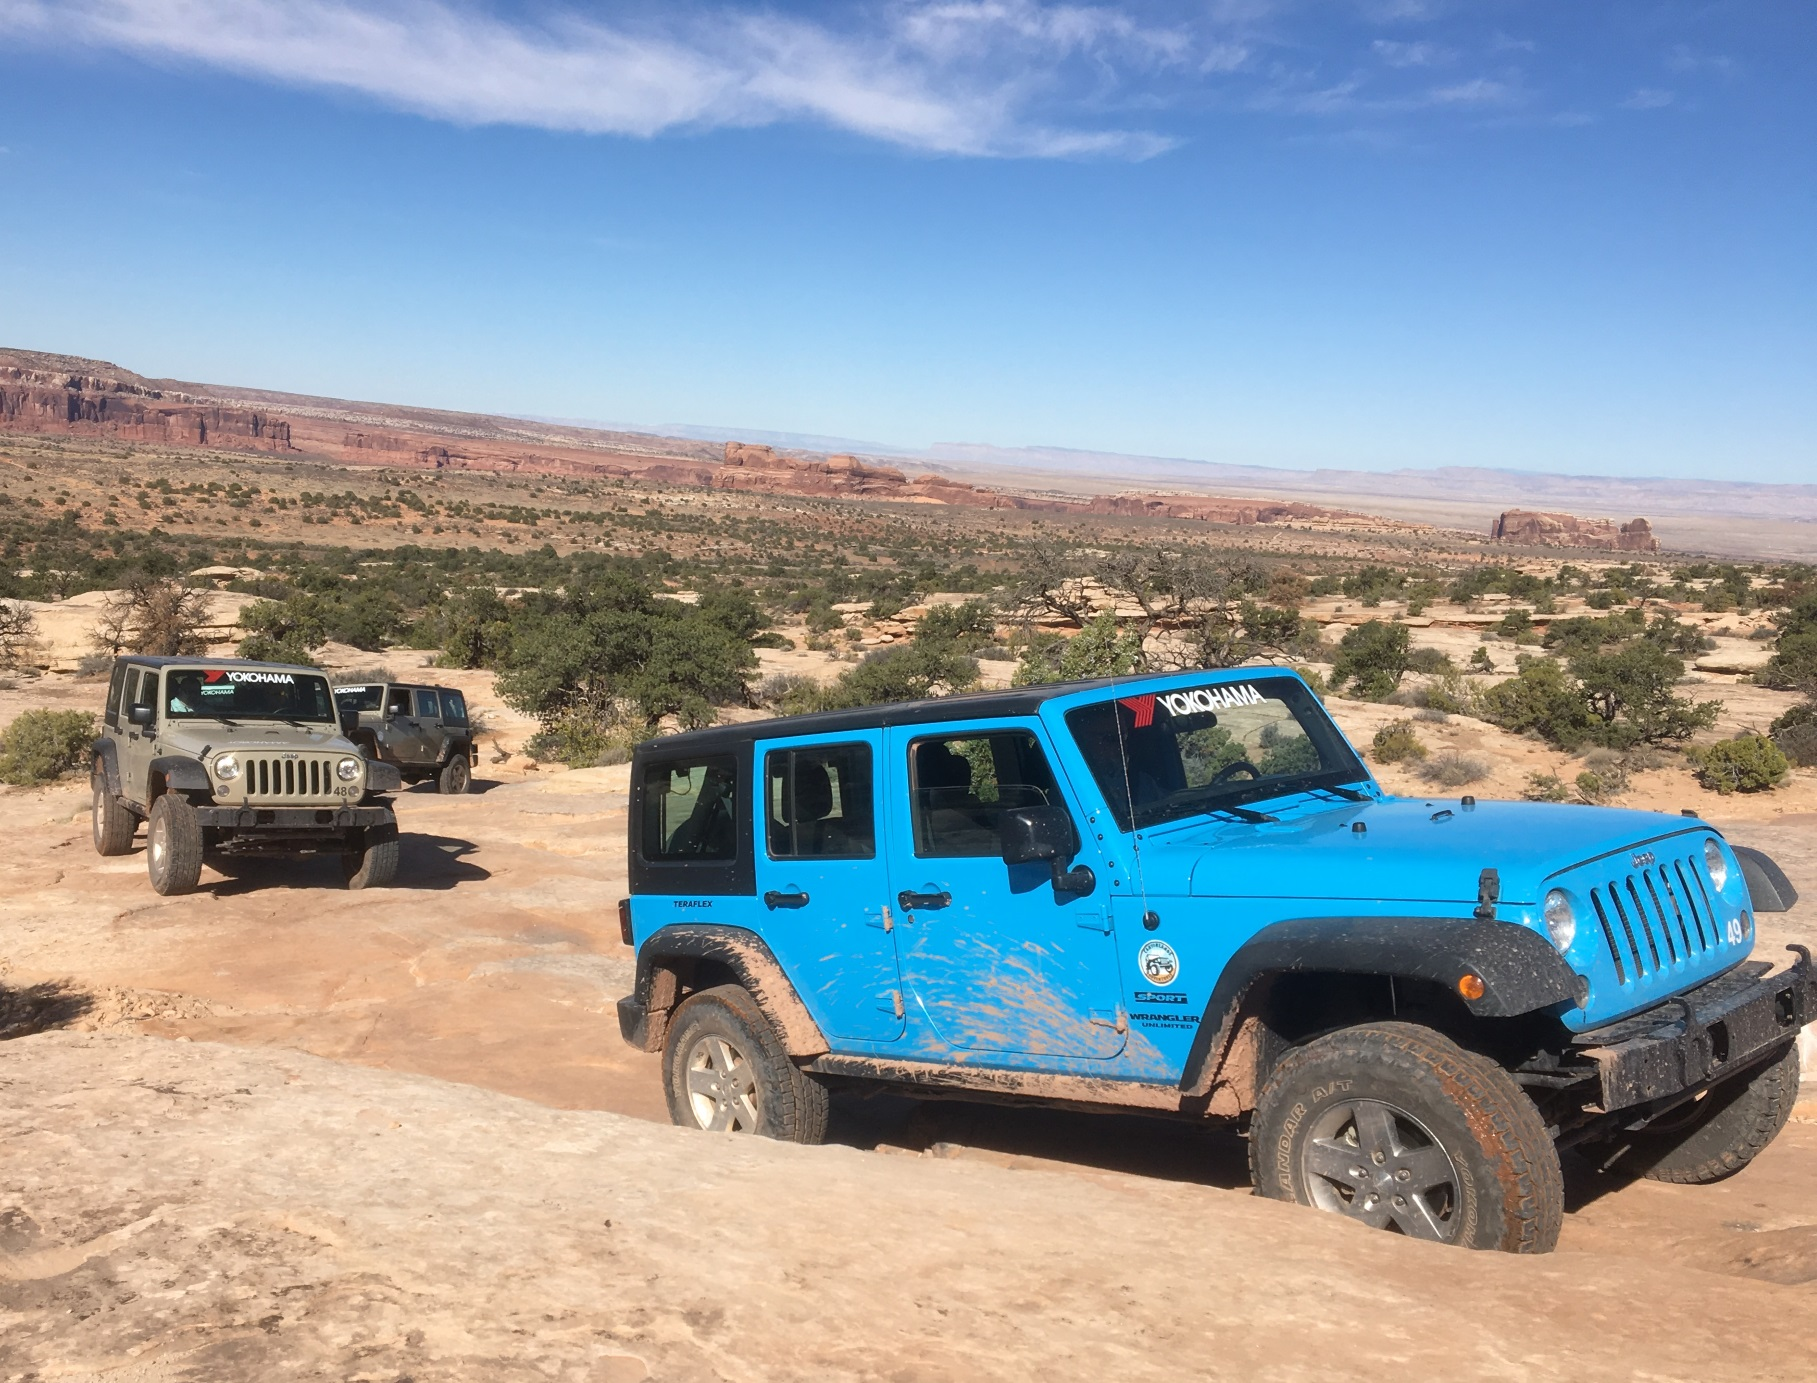 Canyonlands Jeep Adventures, founded by Jason Taylor in 2004, rents off-road vehicles near Moab, Utah, Arches and Canyonlands Na